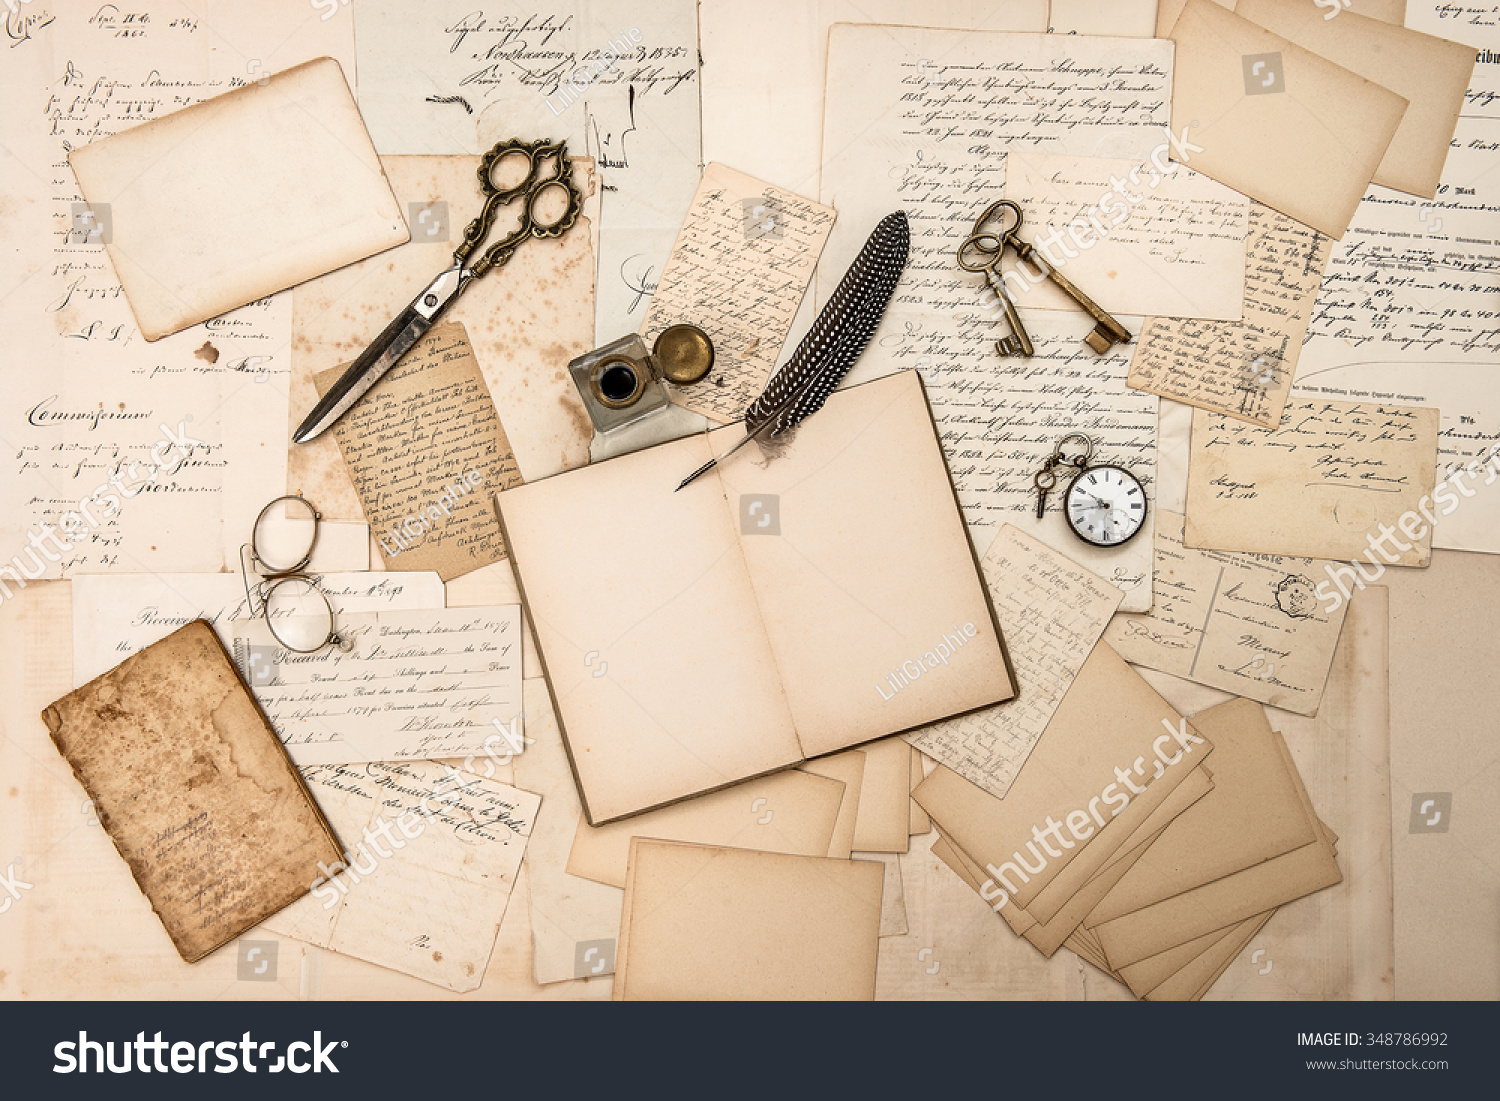 old handwritten letters pictures and antique writing accessories nostalgic sentimental paper background